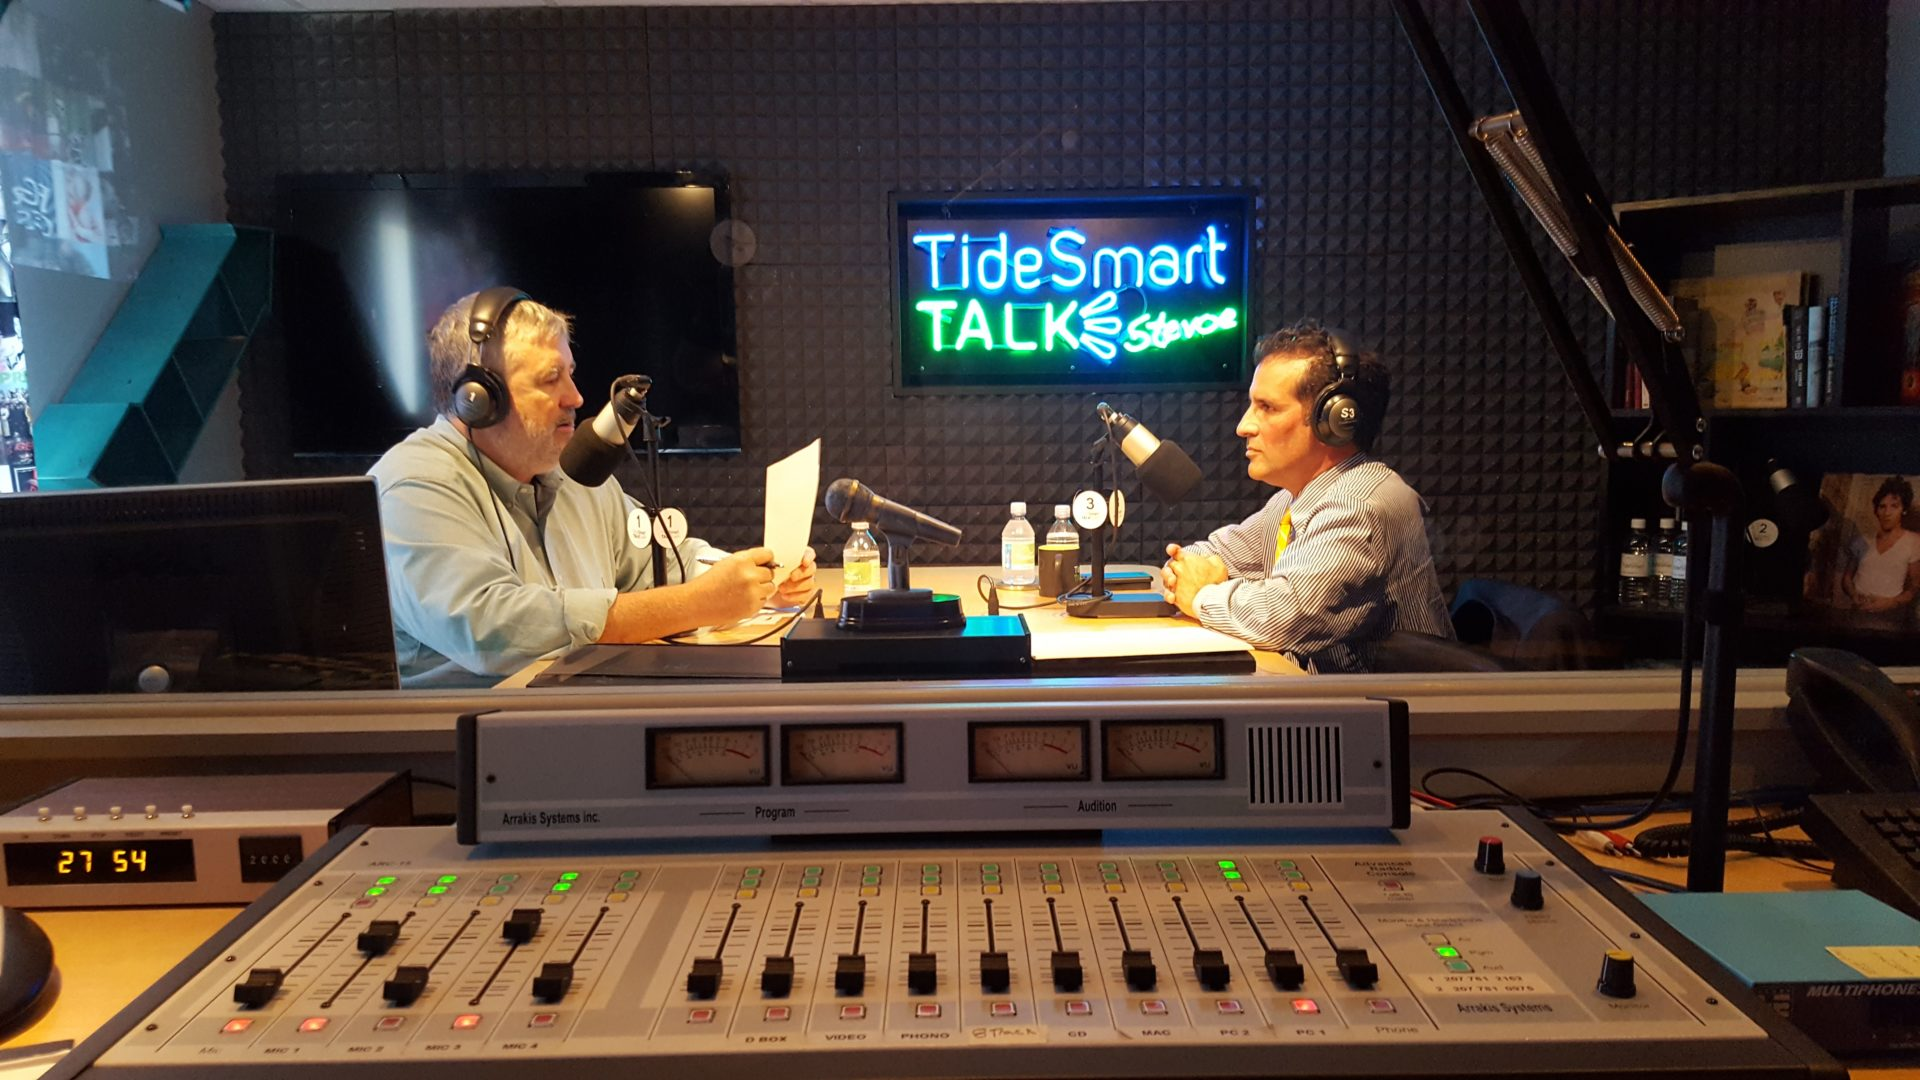 Host of TideSmart Talk with Stevoe, Steve Woods, welcomed Superintendent of Portland Public Schools, Xavier Botana (at right).